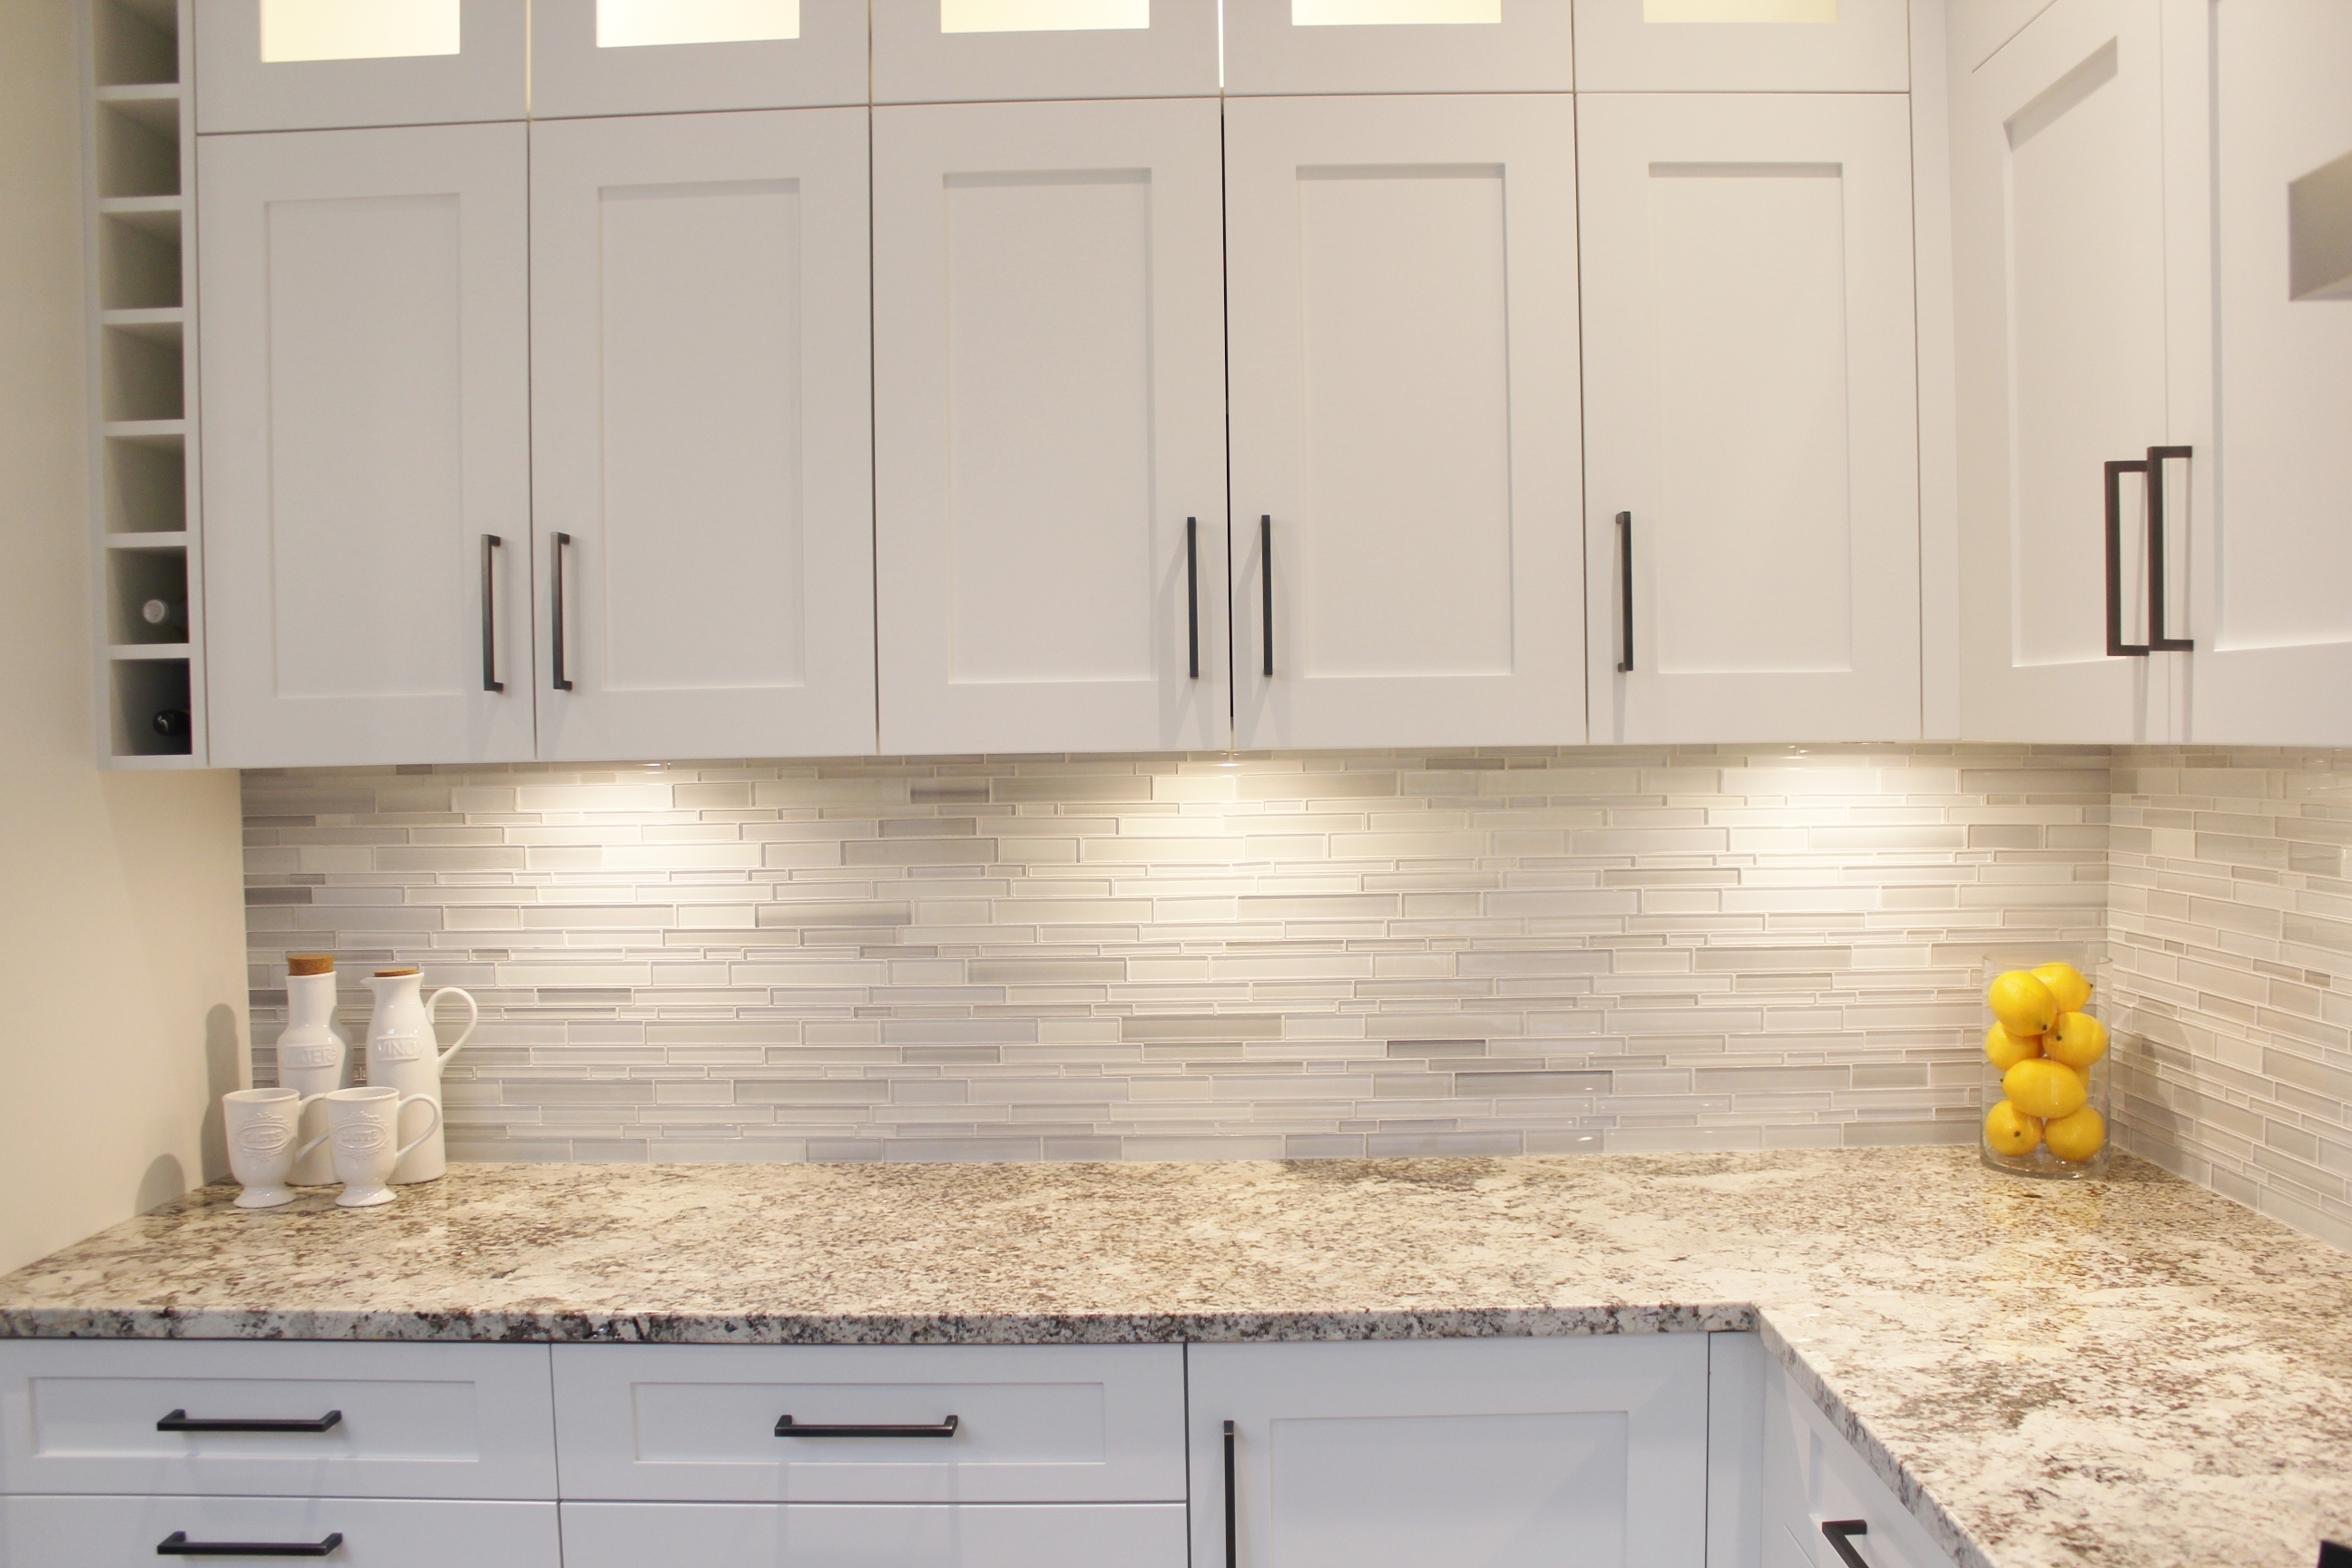 Alaskan White Granite Countertop